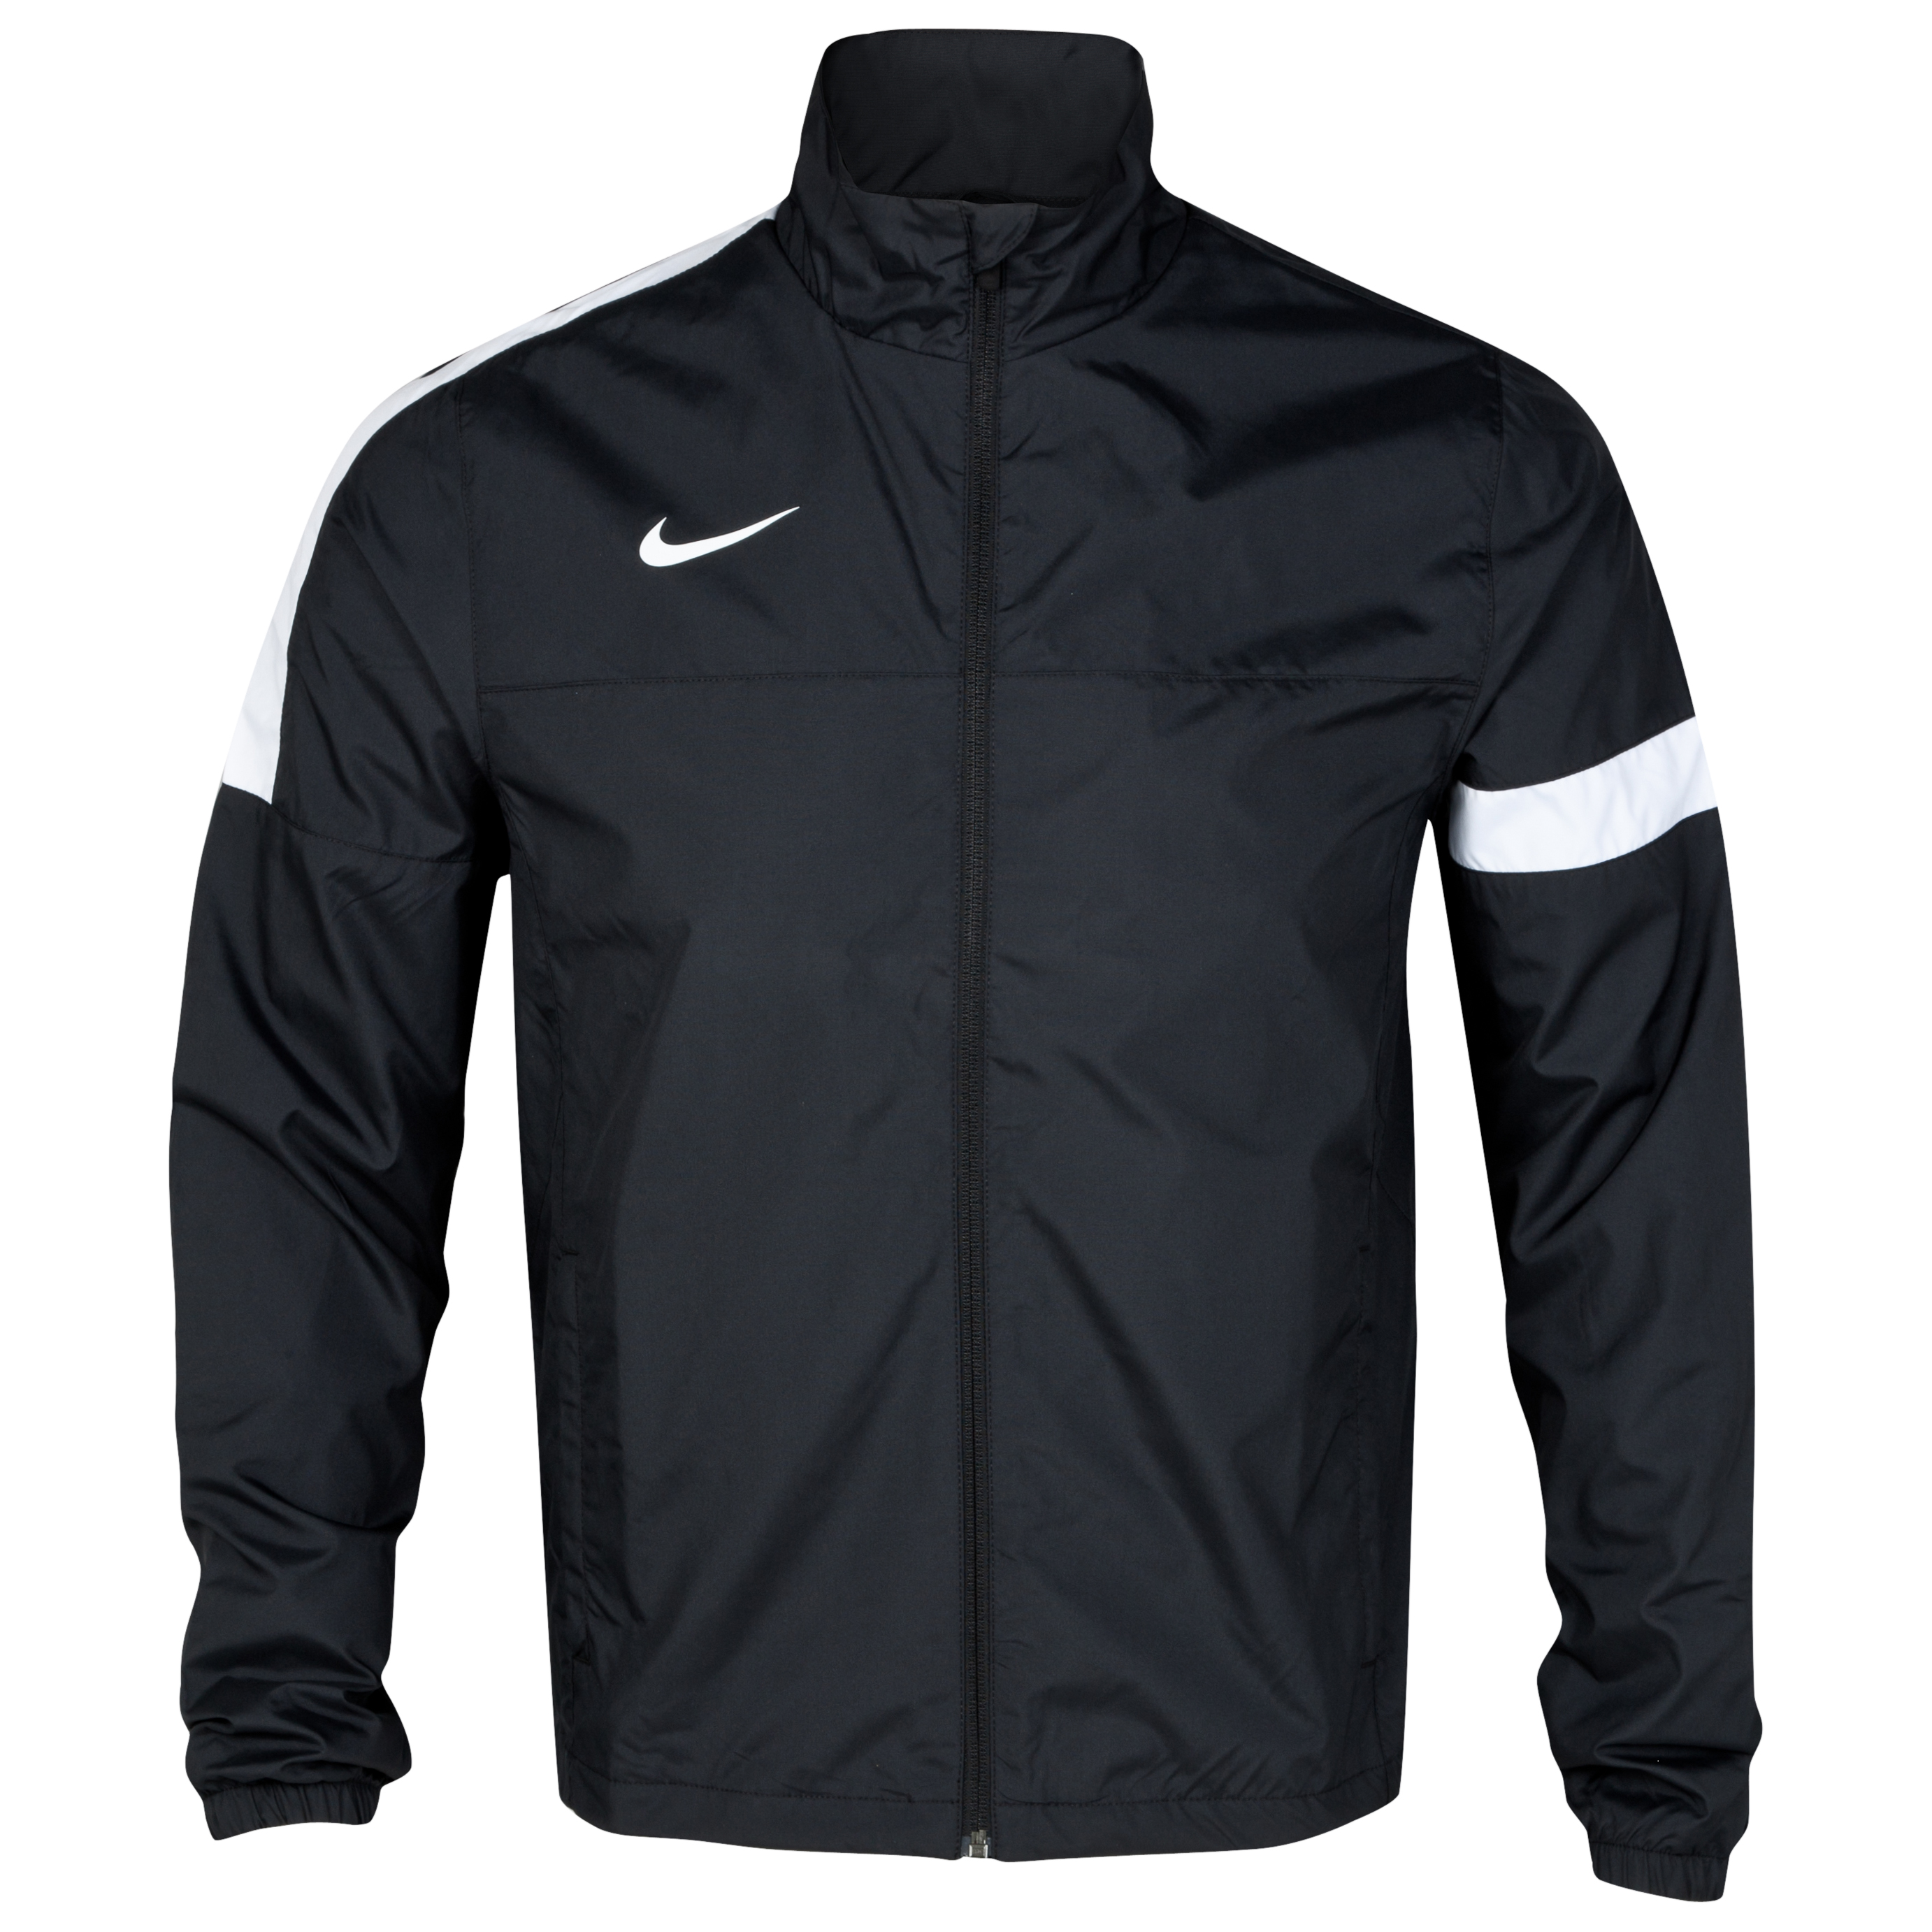 Nike Training Sideline Track Jacket - Black/White